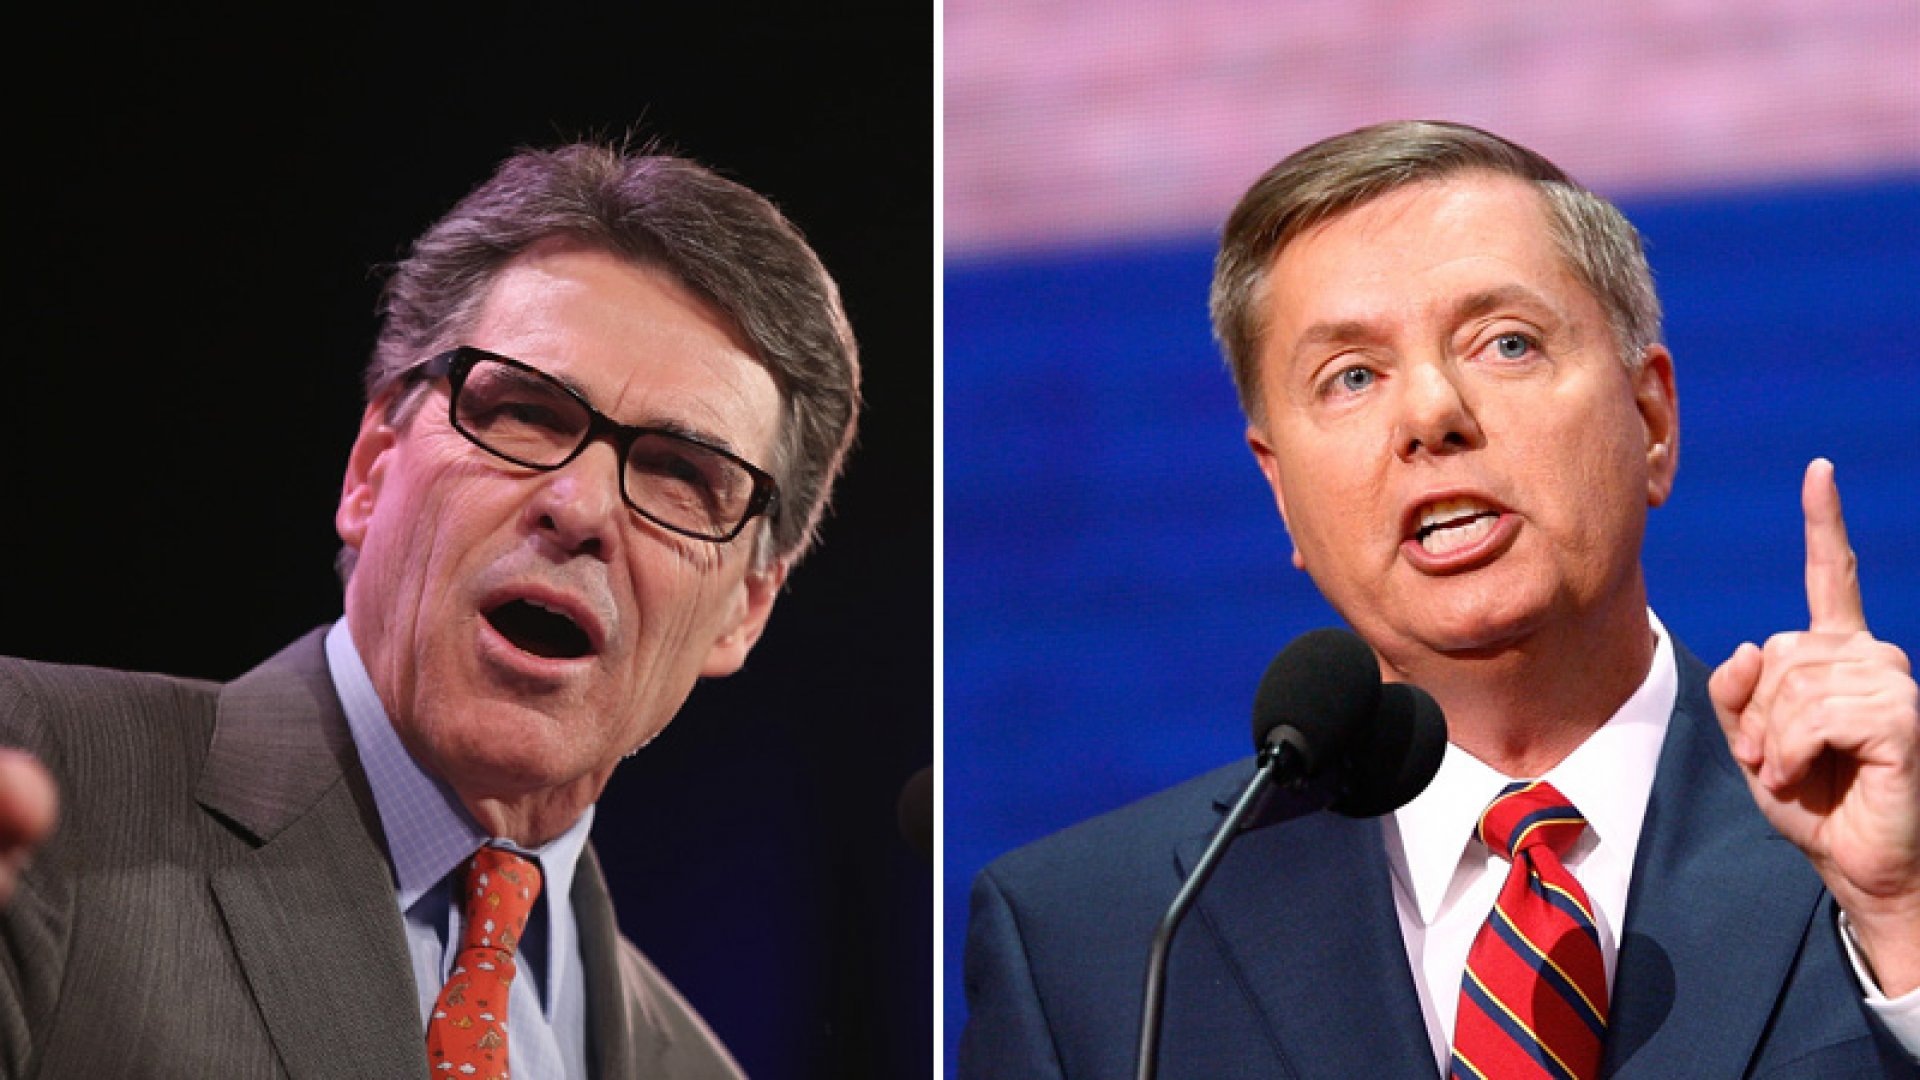 Former Texas Governor Rick Perry and Senator Lindsey Graham of South Carolina are expected to announce campaigns for the presidency in June.